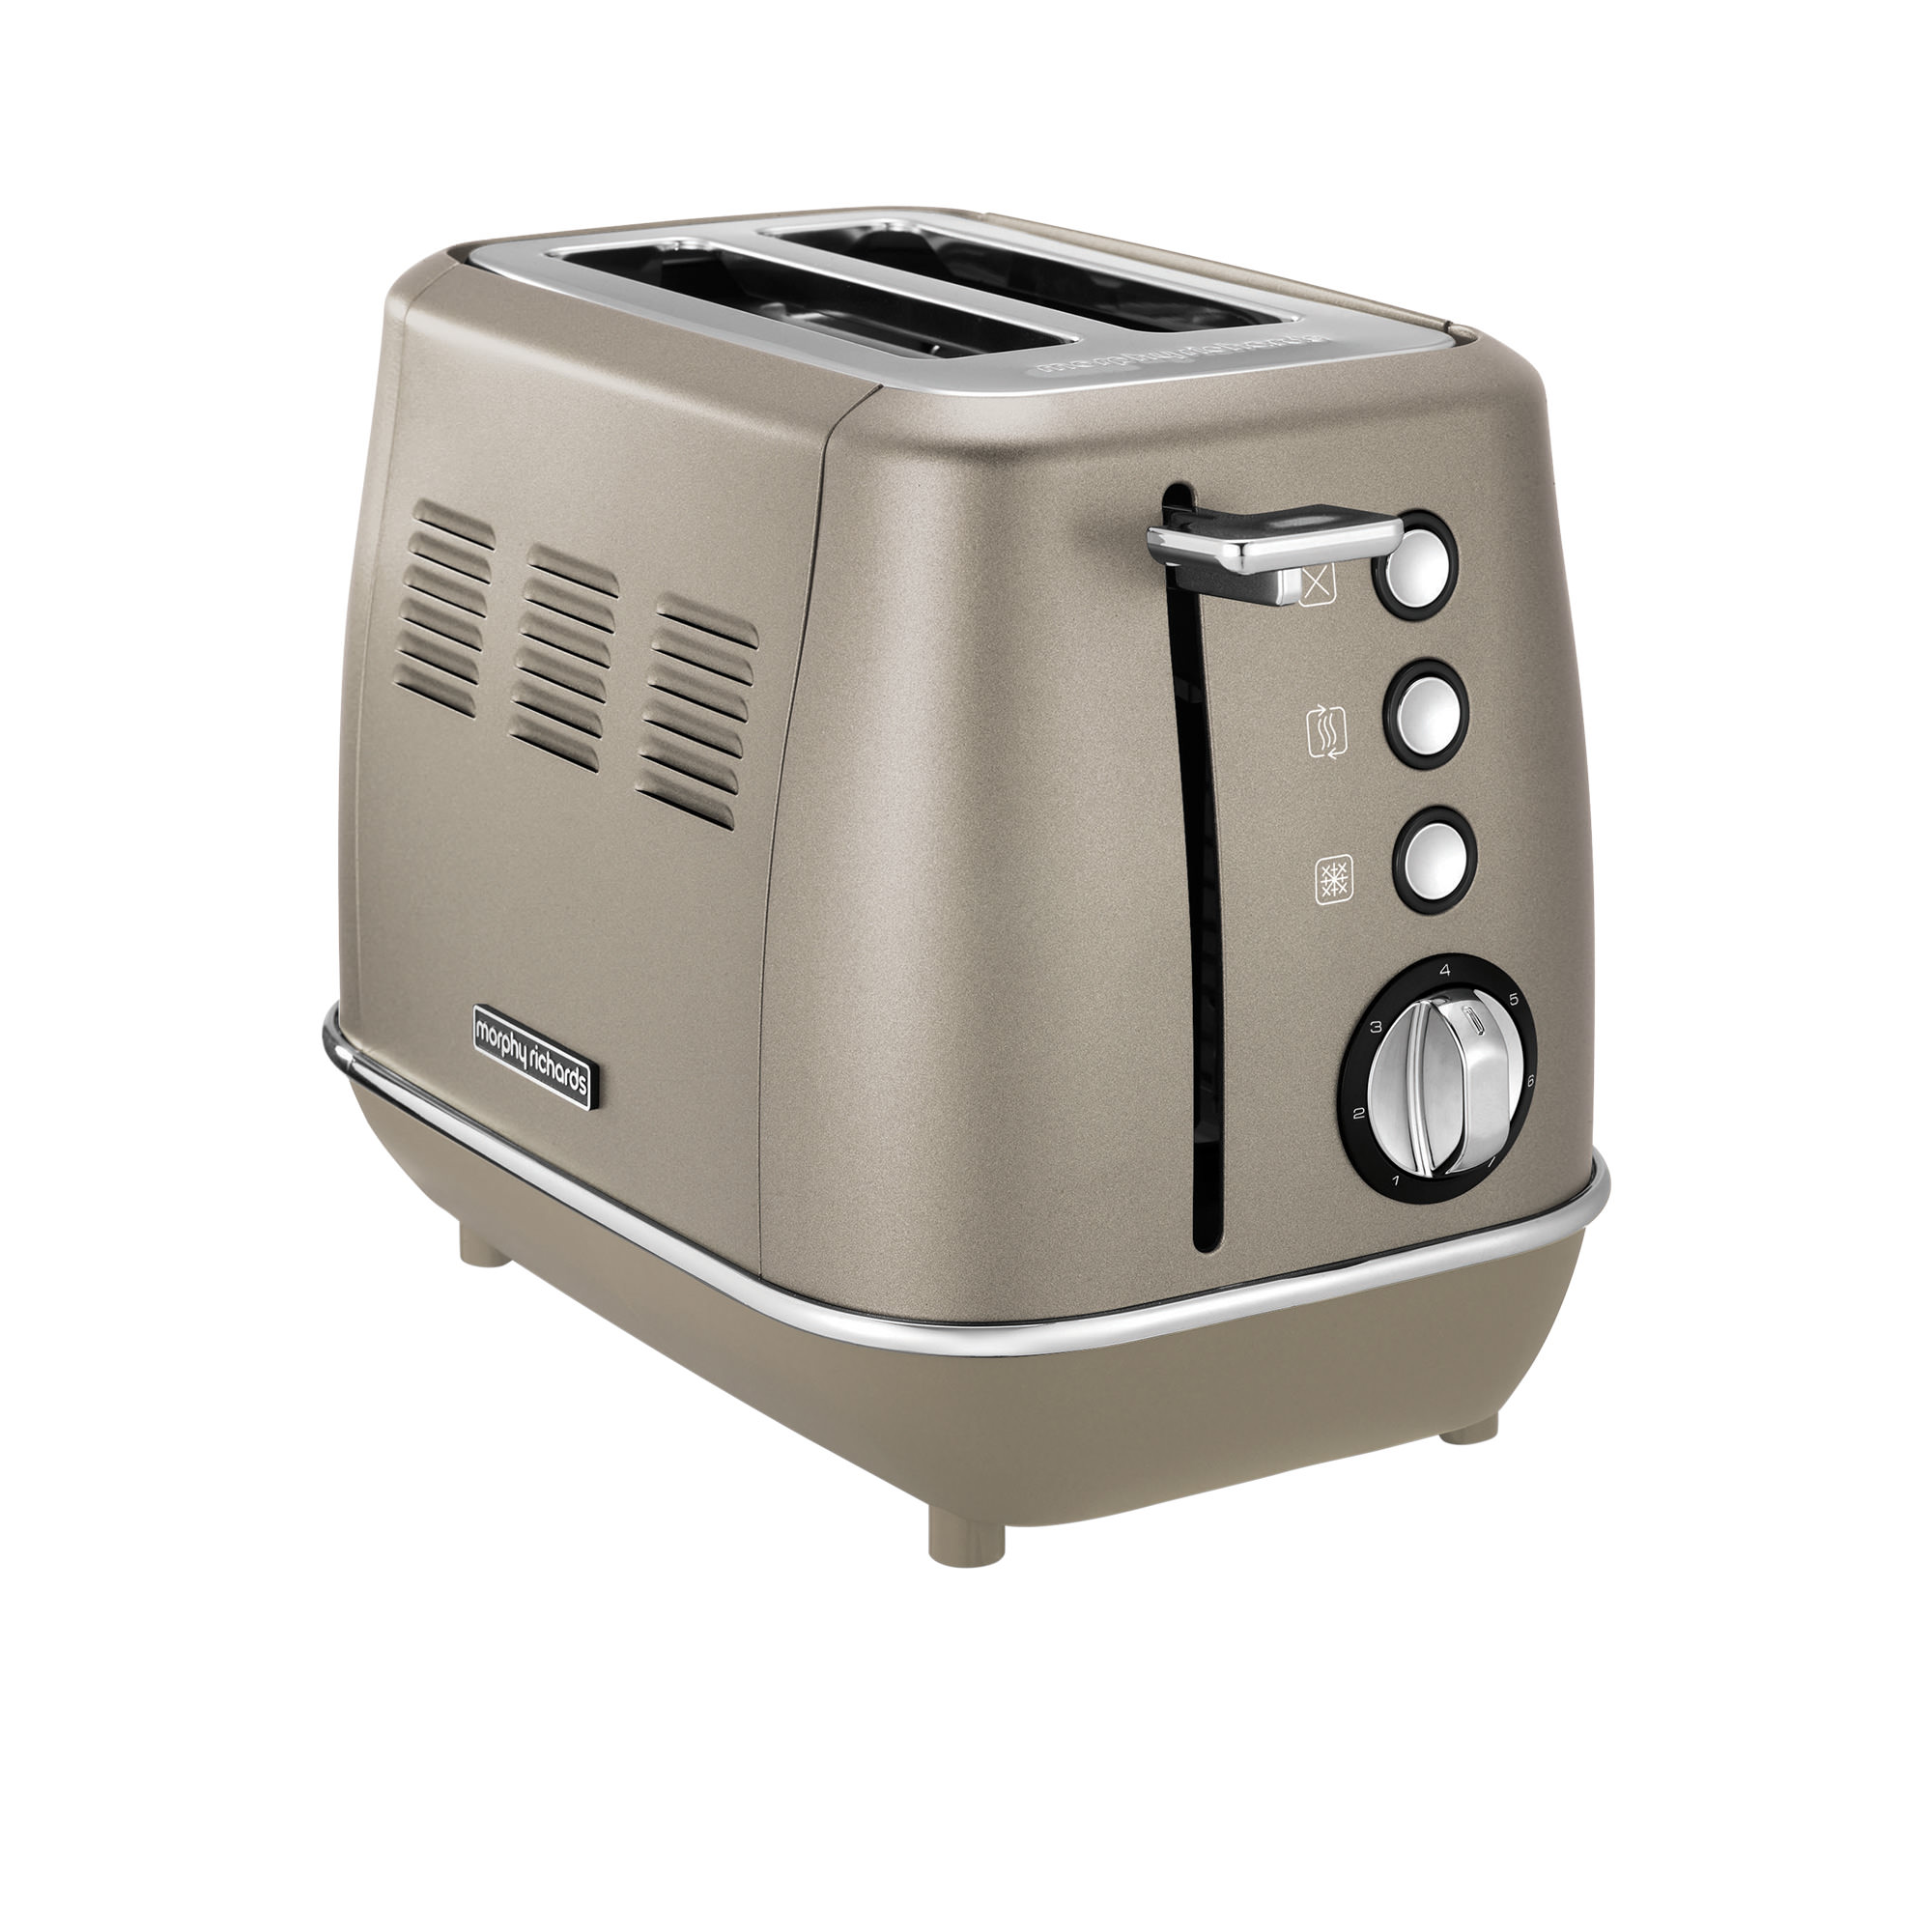 Morphy Richards Evoke Special Edition 2 Slice Toaster Platinum